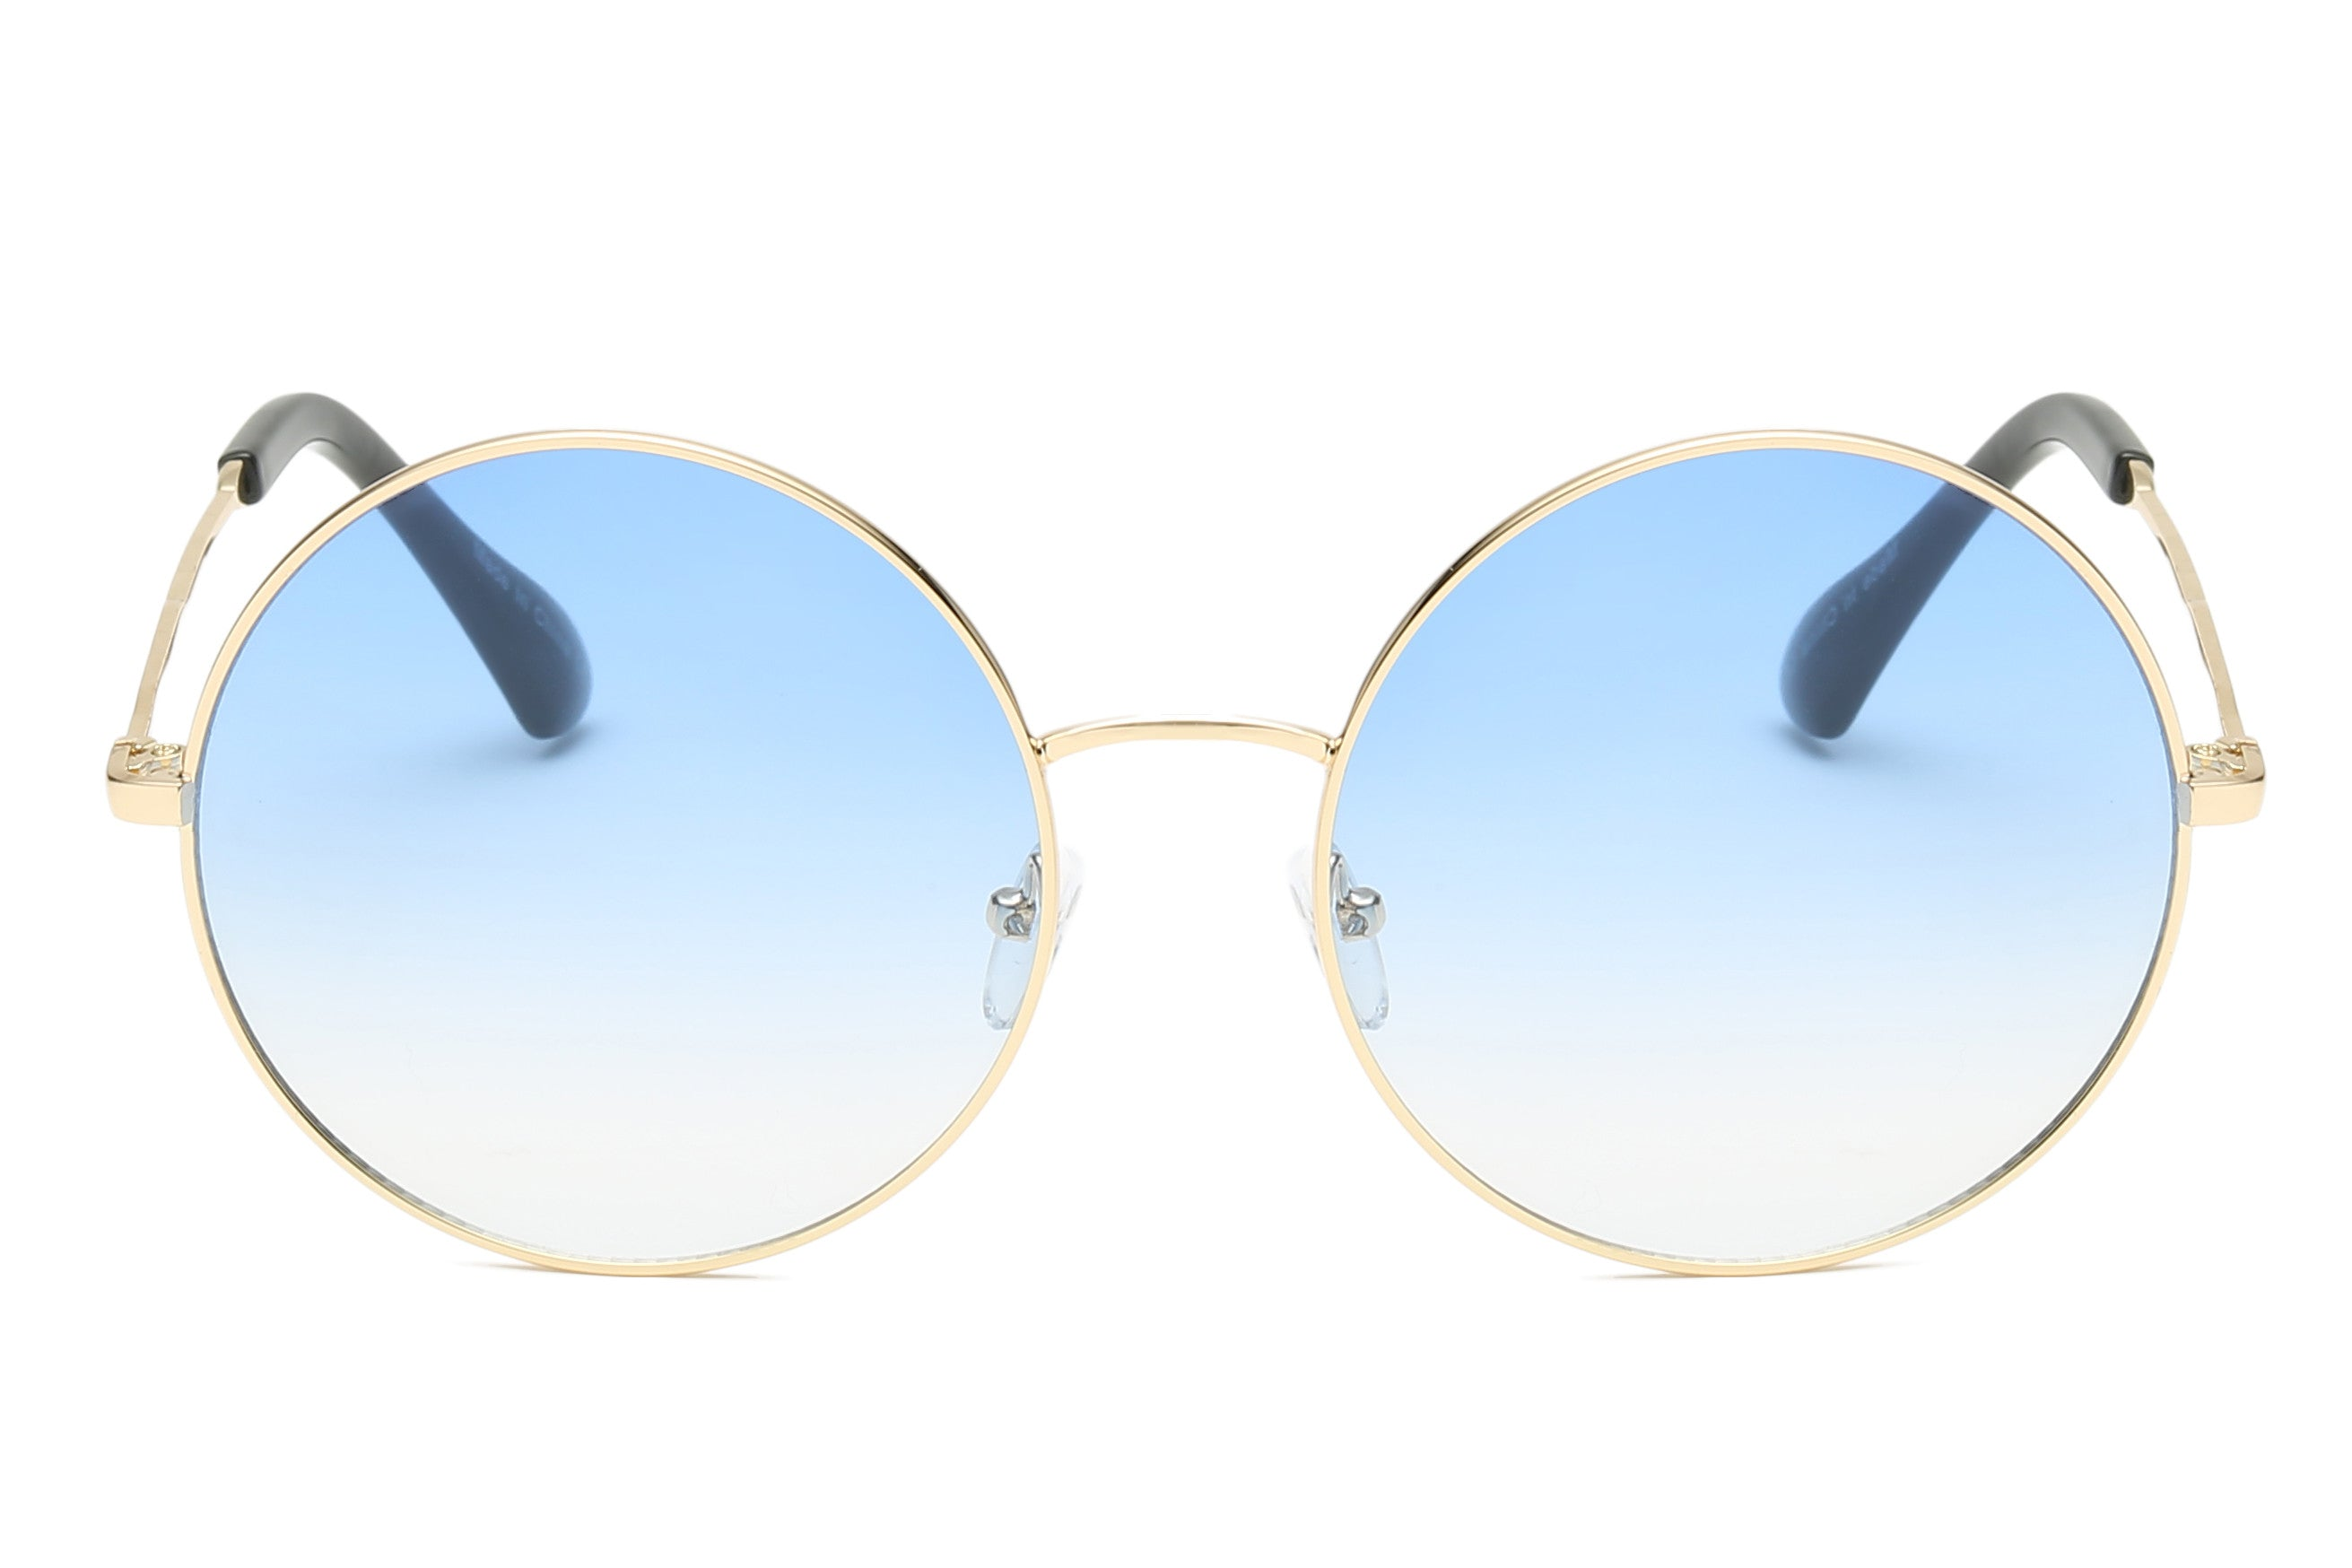 Original John Lennon Shades 2019 Collection - SeeThru™